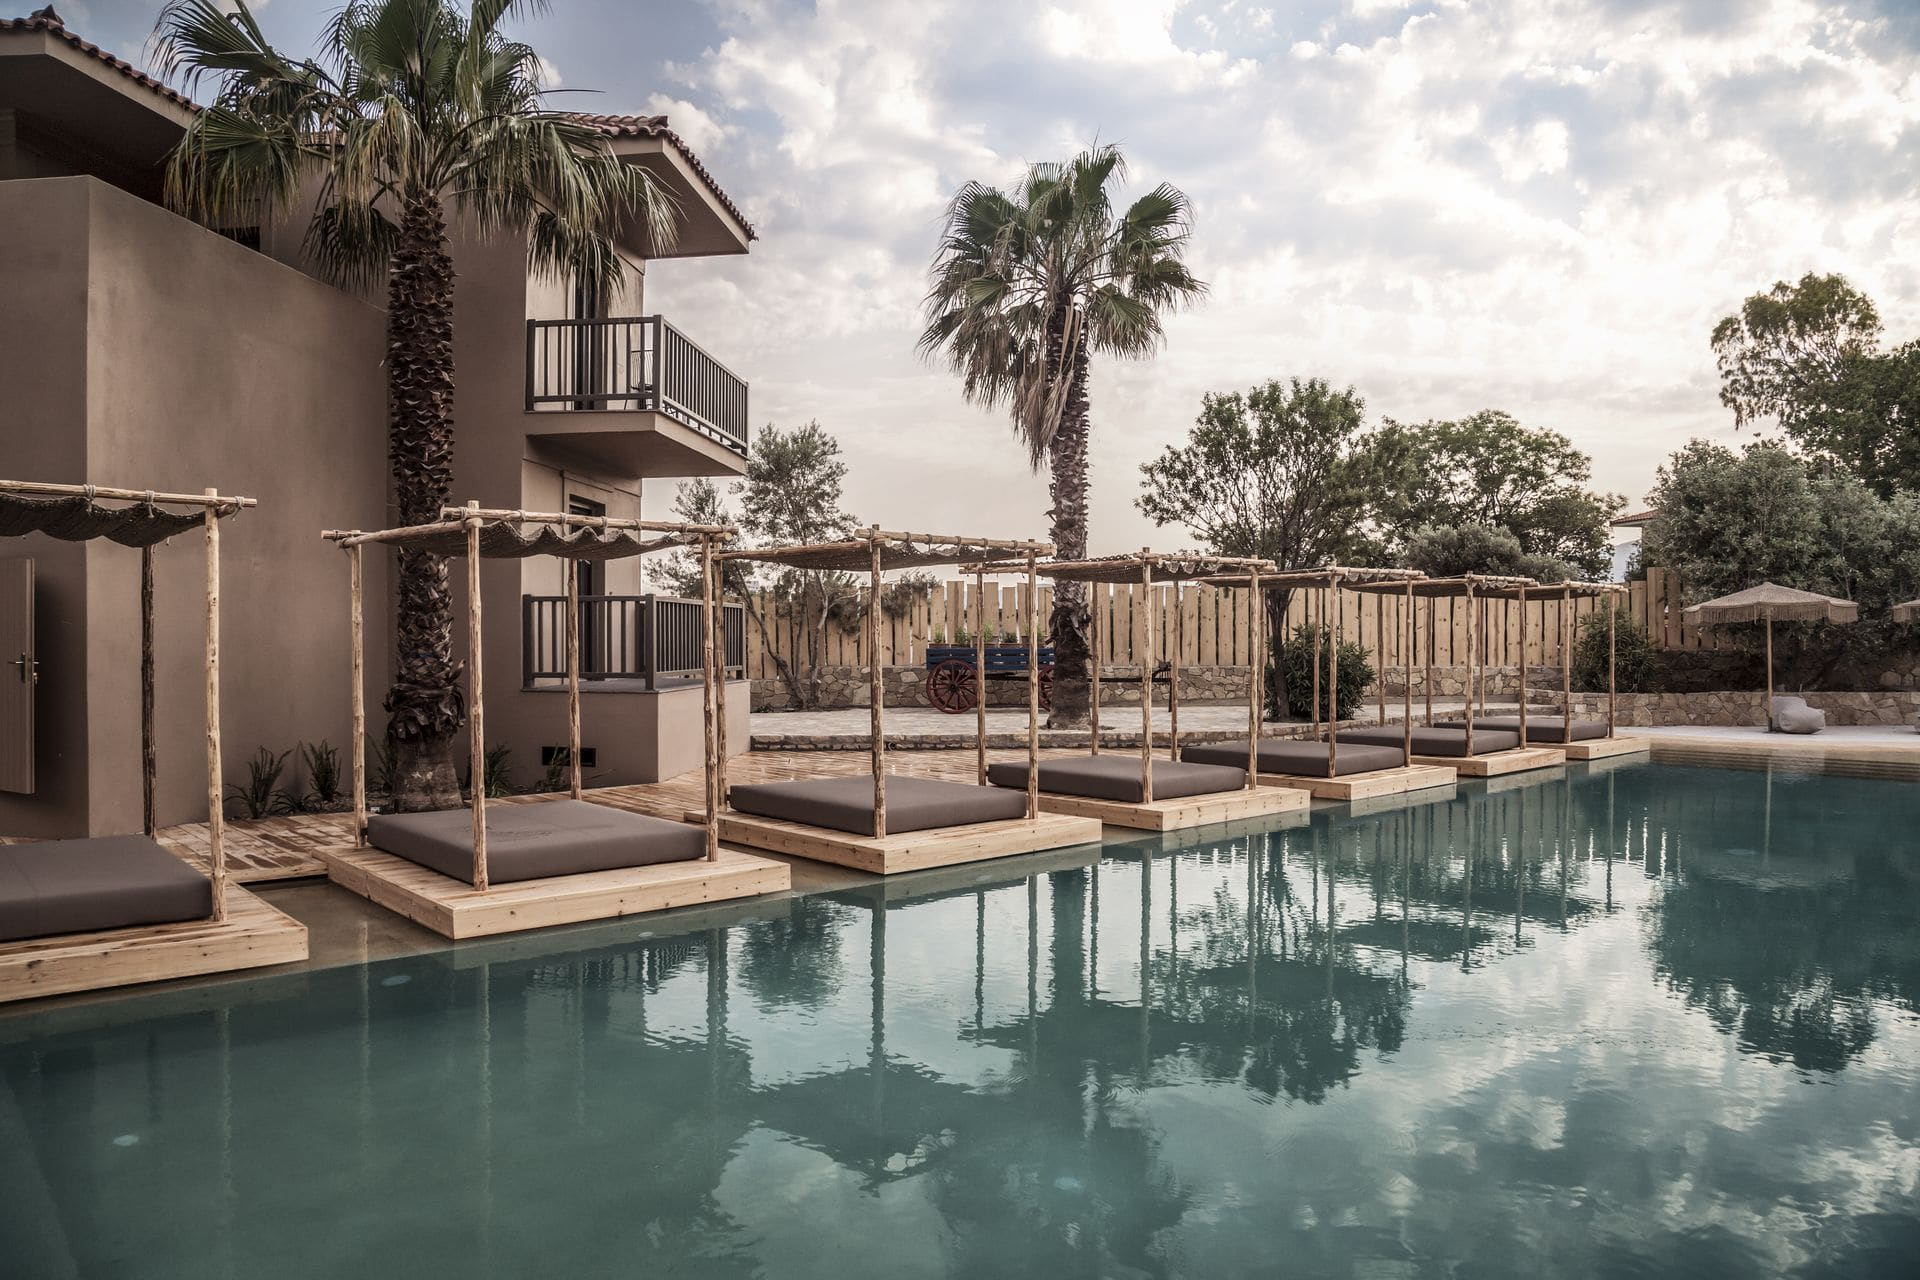 The pool and surrounding sun loungers and palm trees at Doryssa boutique hotel in samos